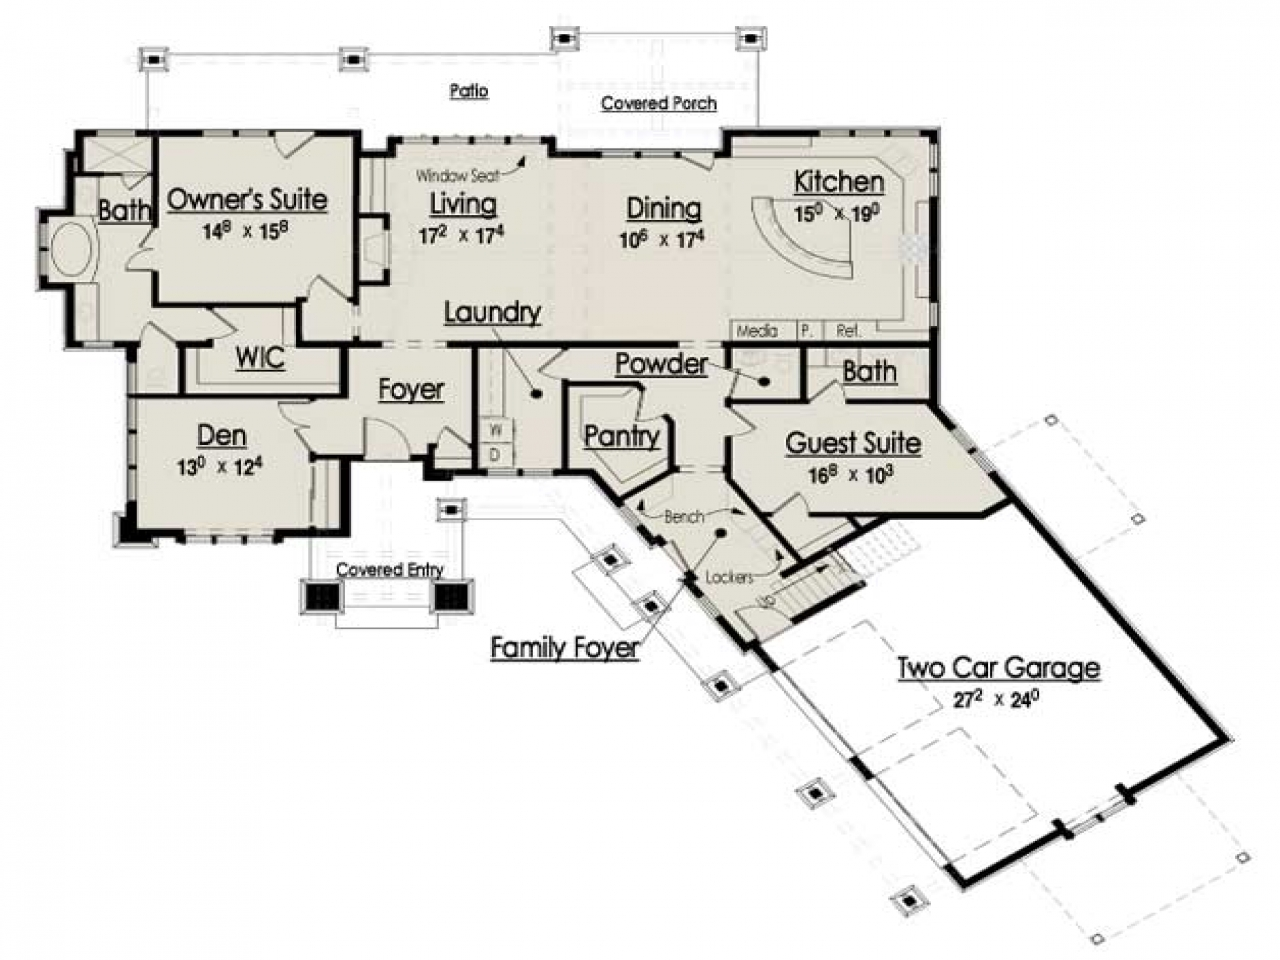 Rustic mountain house floor plans rustic mountain for Rustic floor plans